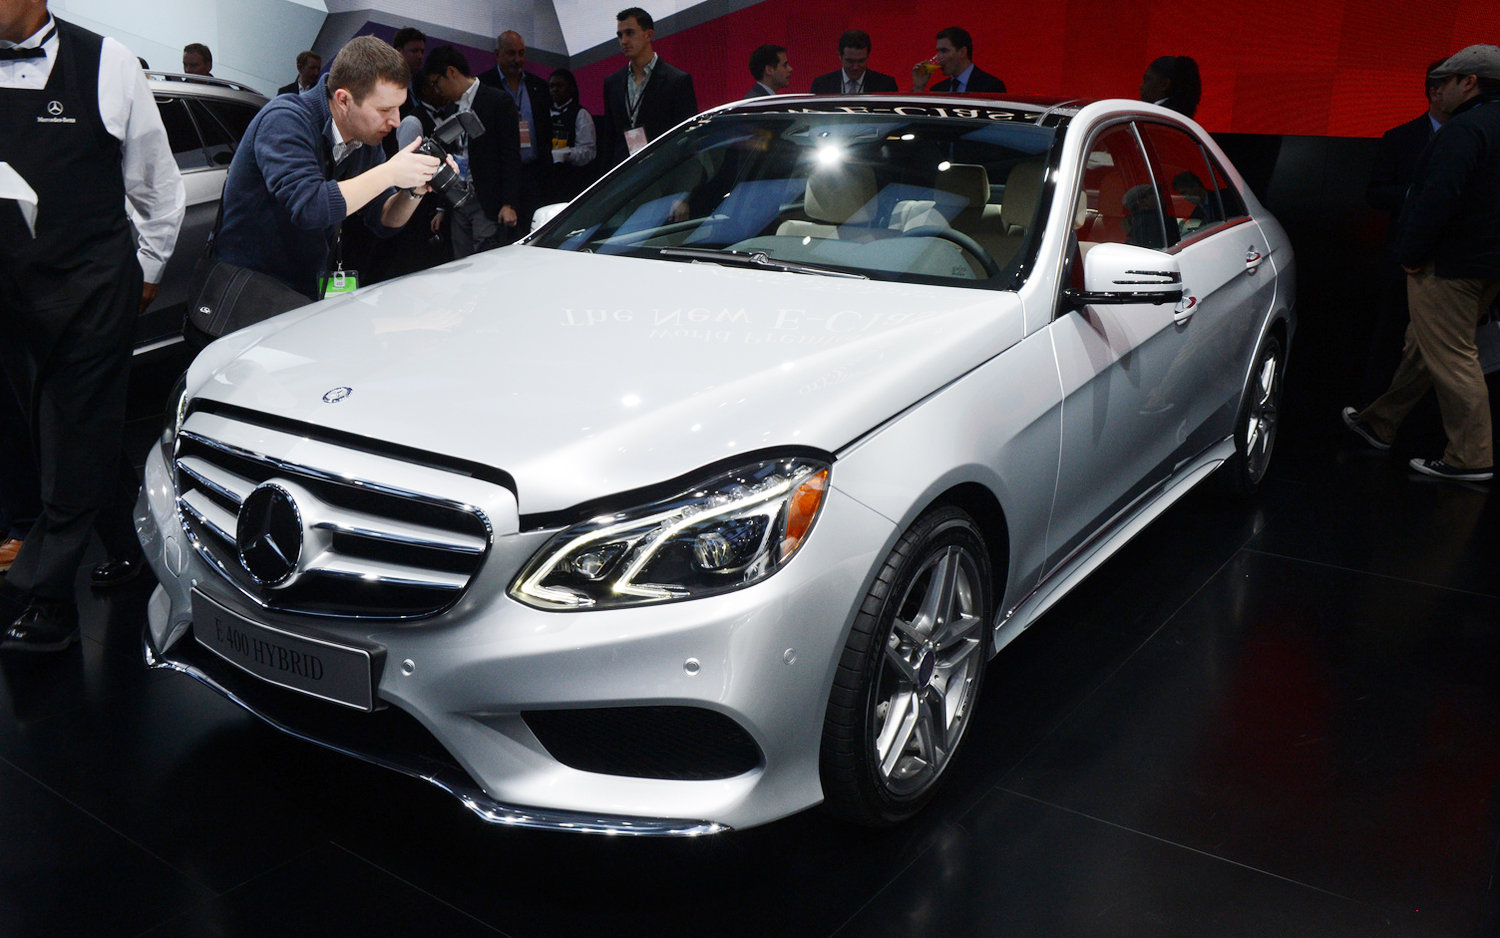 2014-Mercedes-Benz-E400-Hybrid-front-three-quarter.jpg